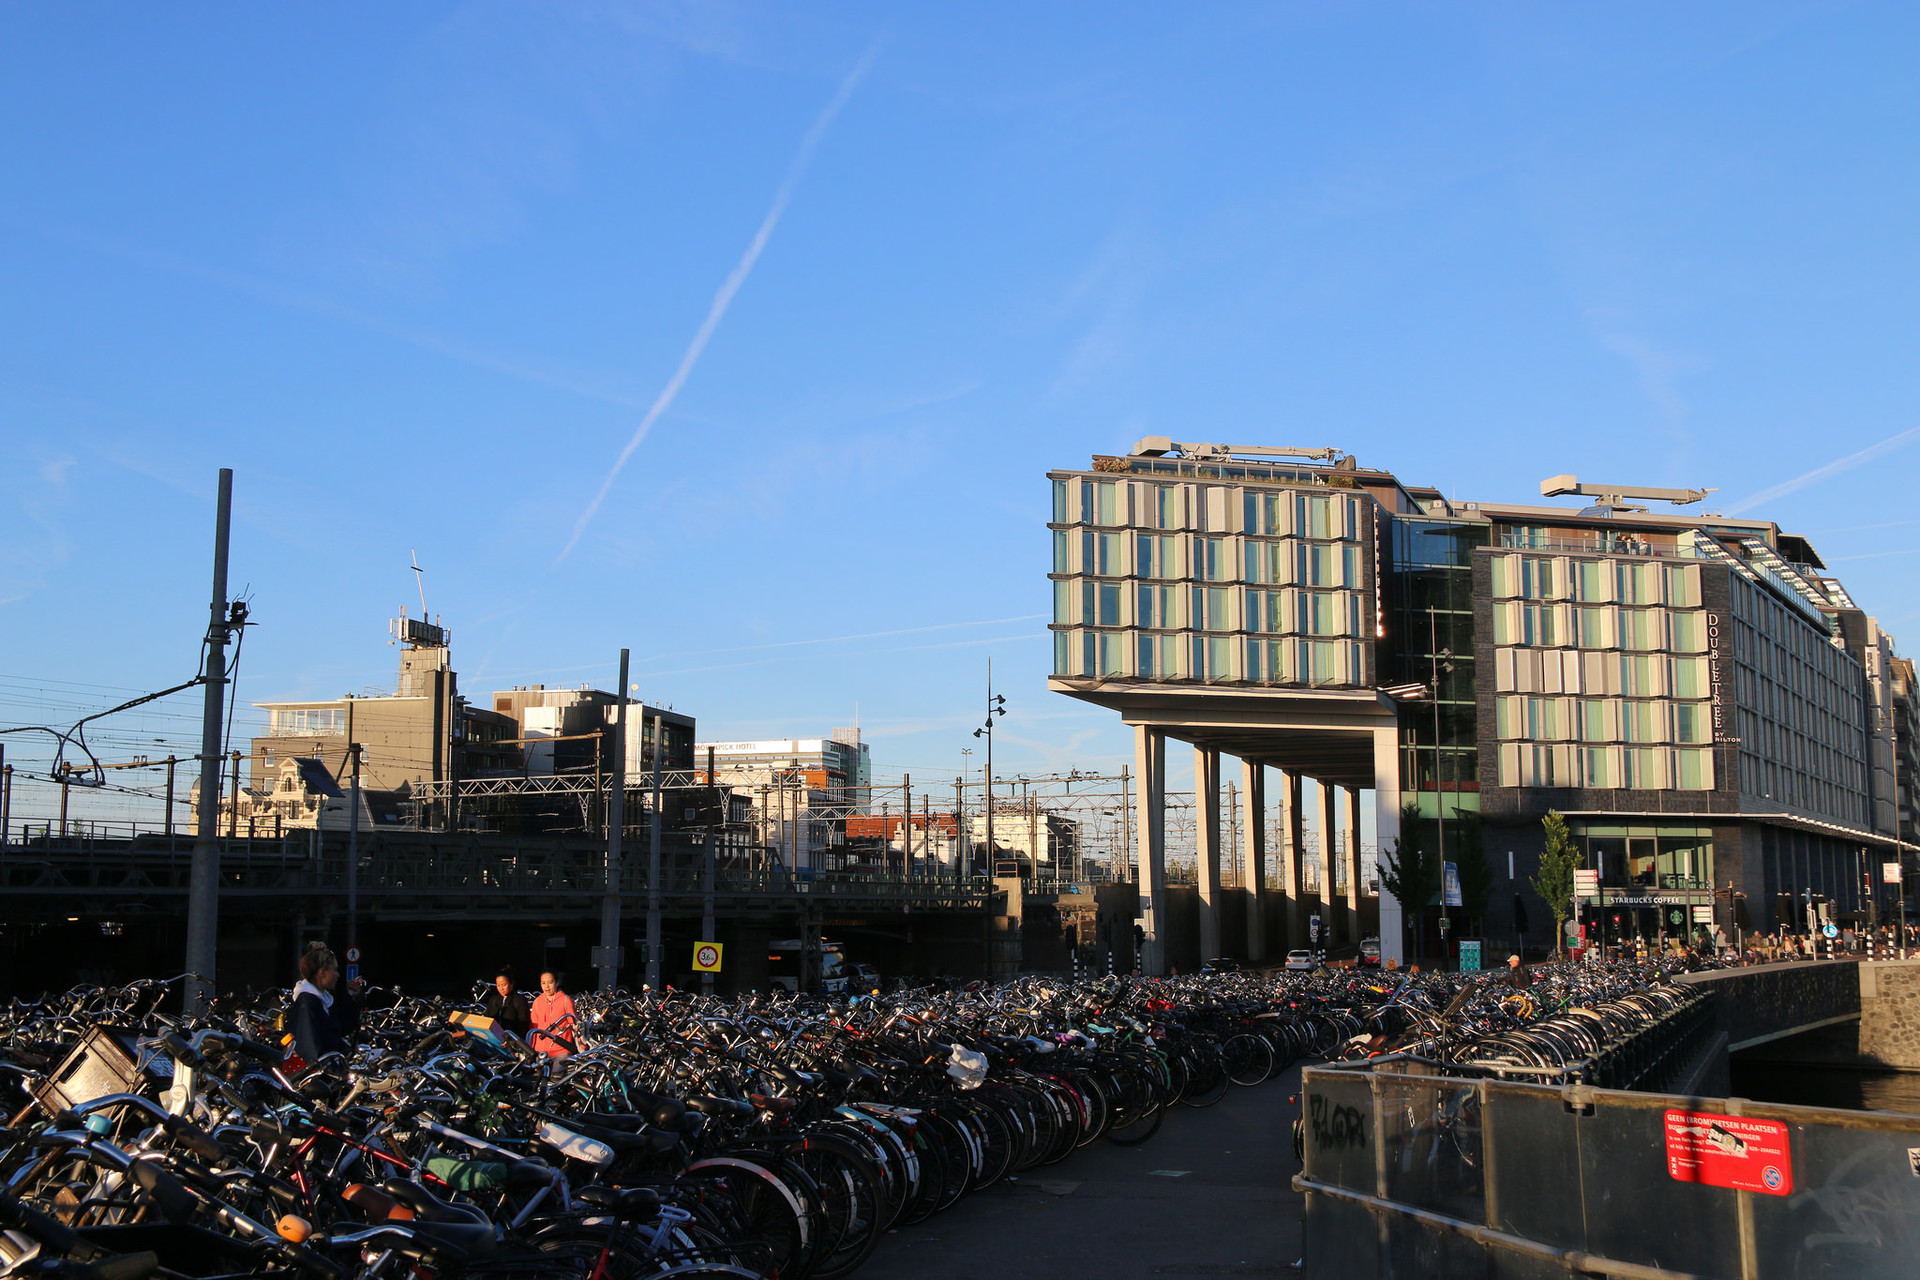 amsterdam-_-my-great-experience-amsterda